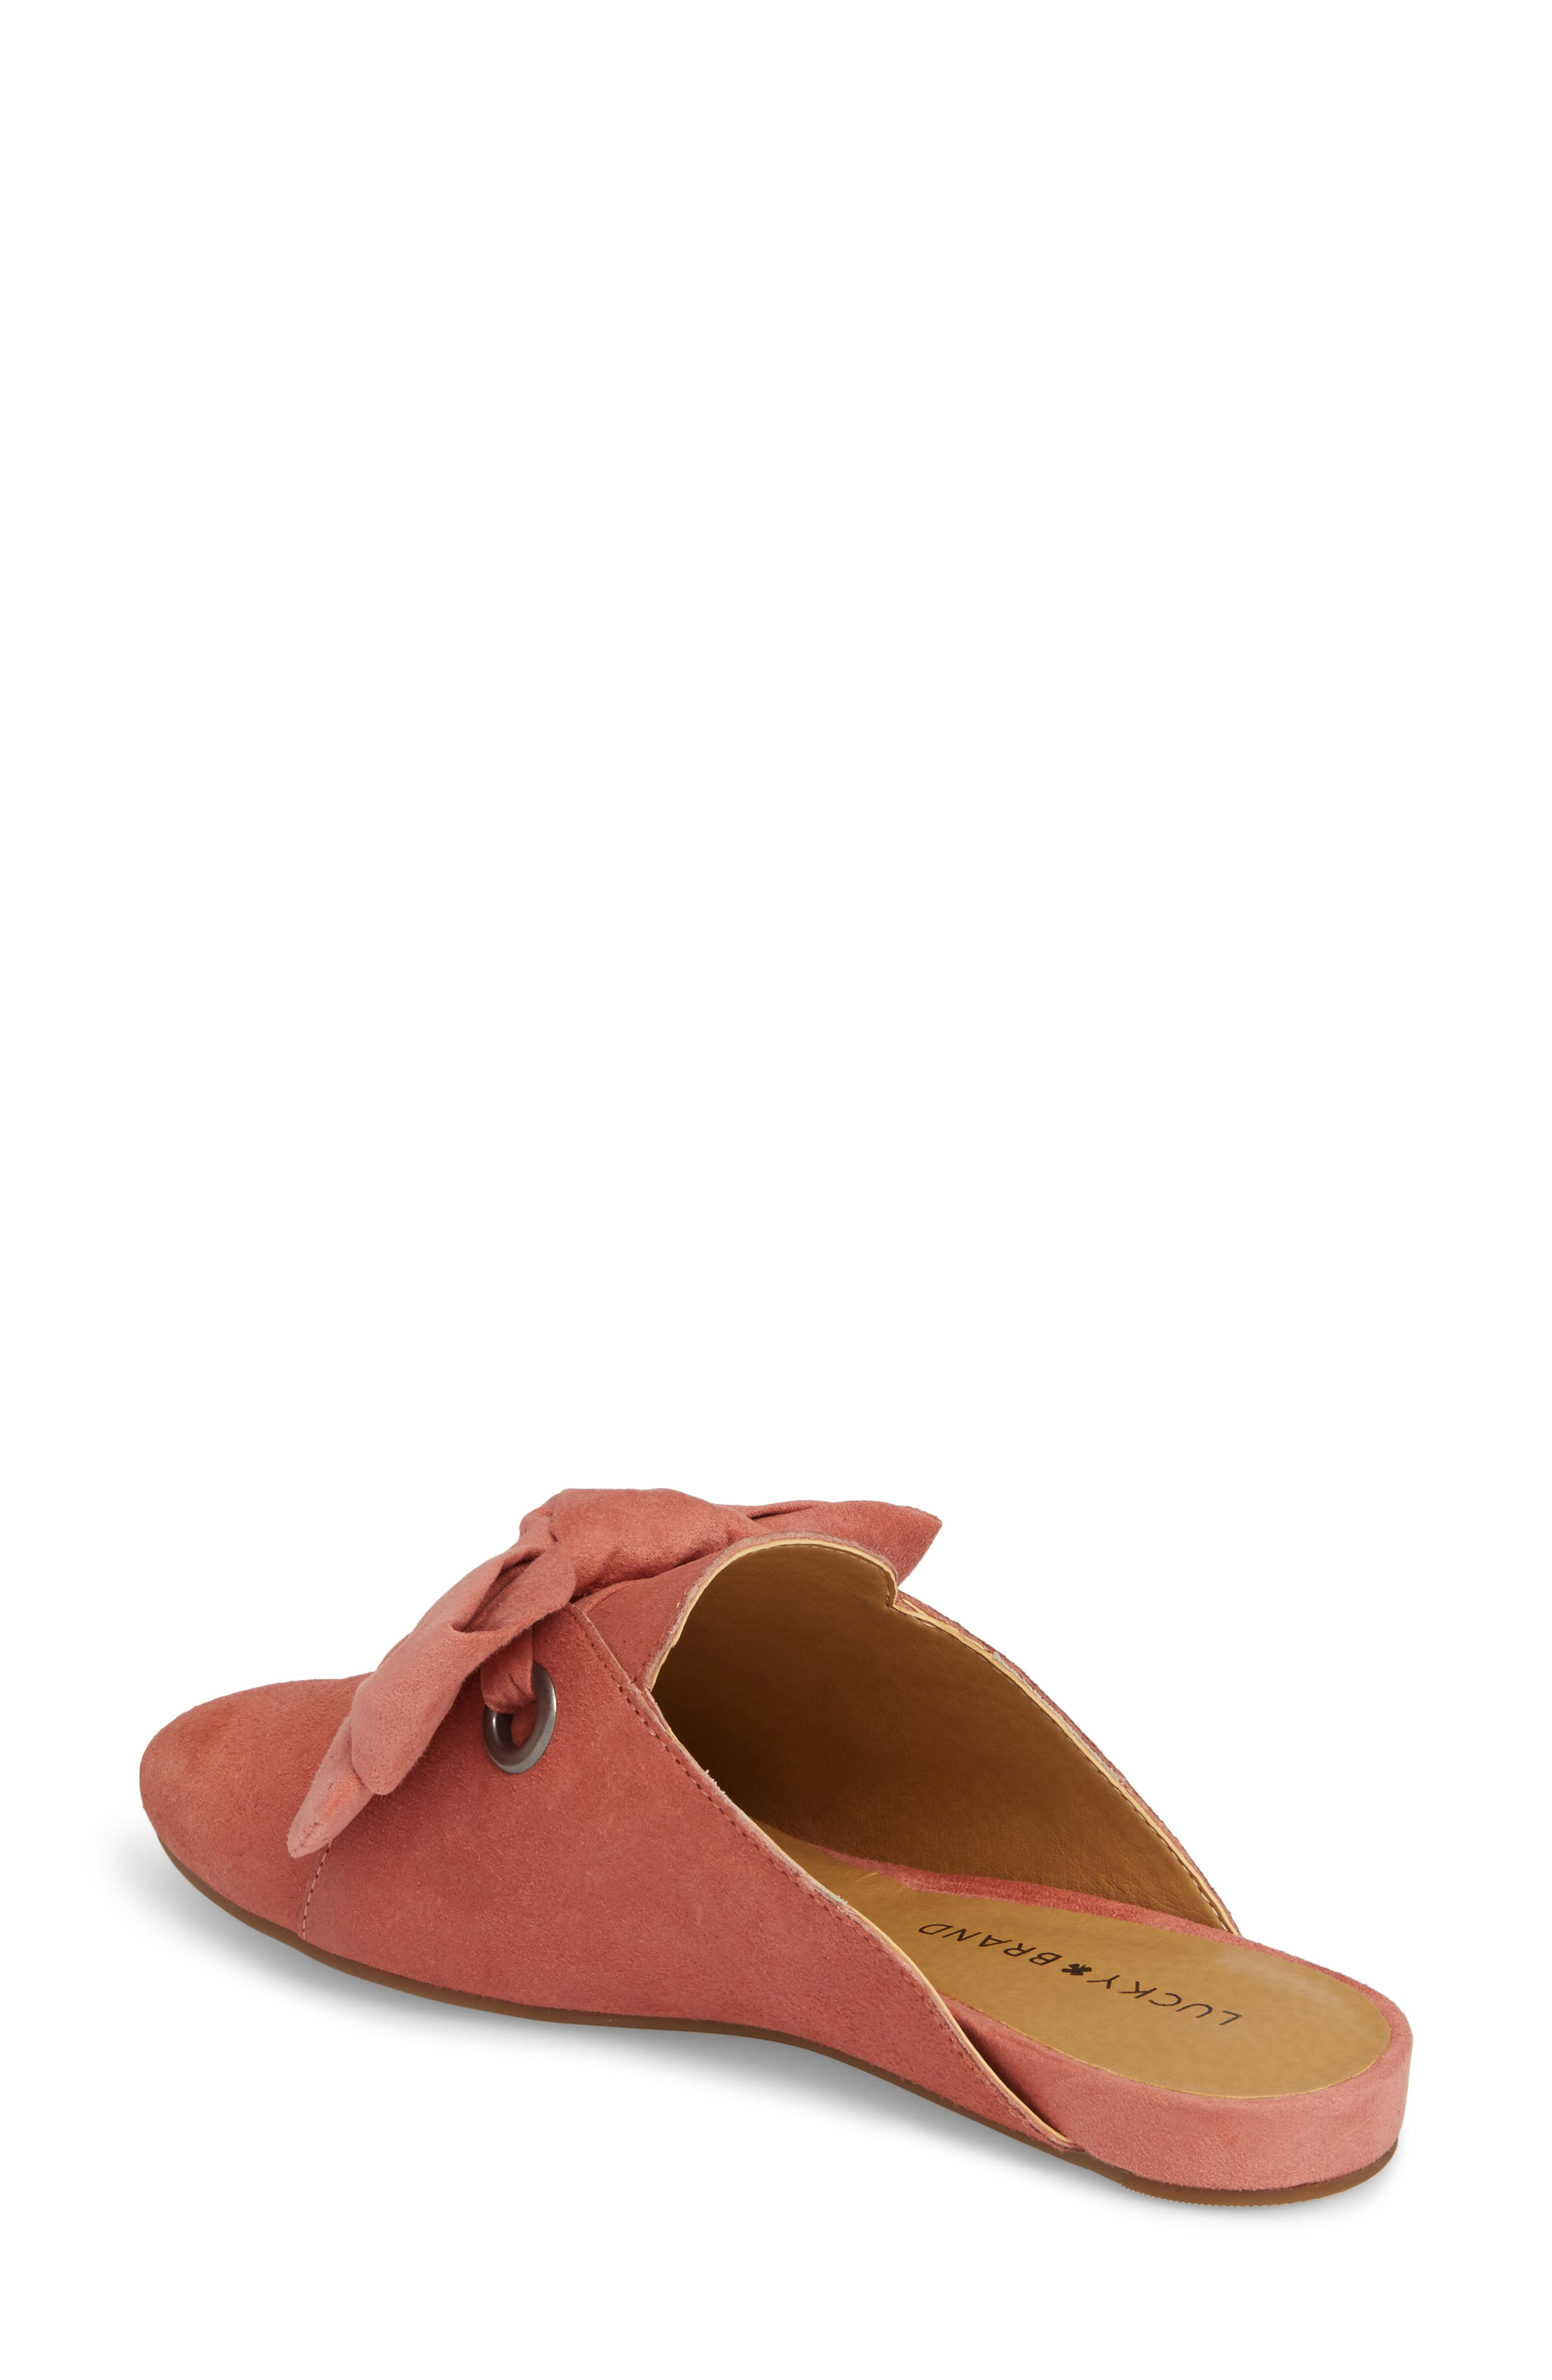 Florean Bow Loafer Mule,                             Alternate thumbnail 2, color,                             Canyon Rose Leather